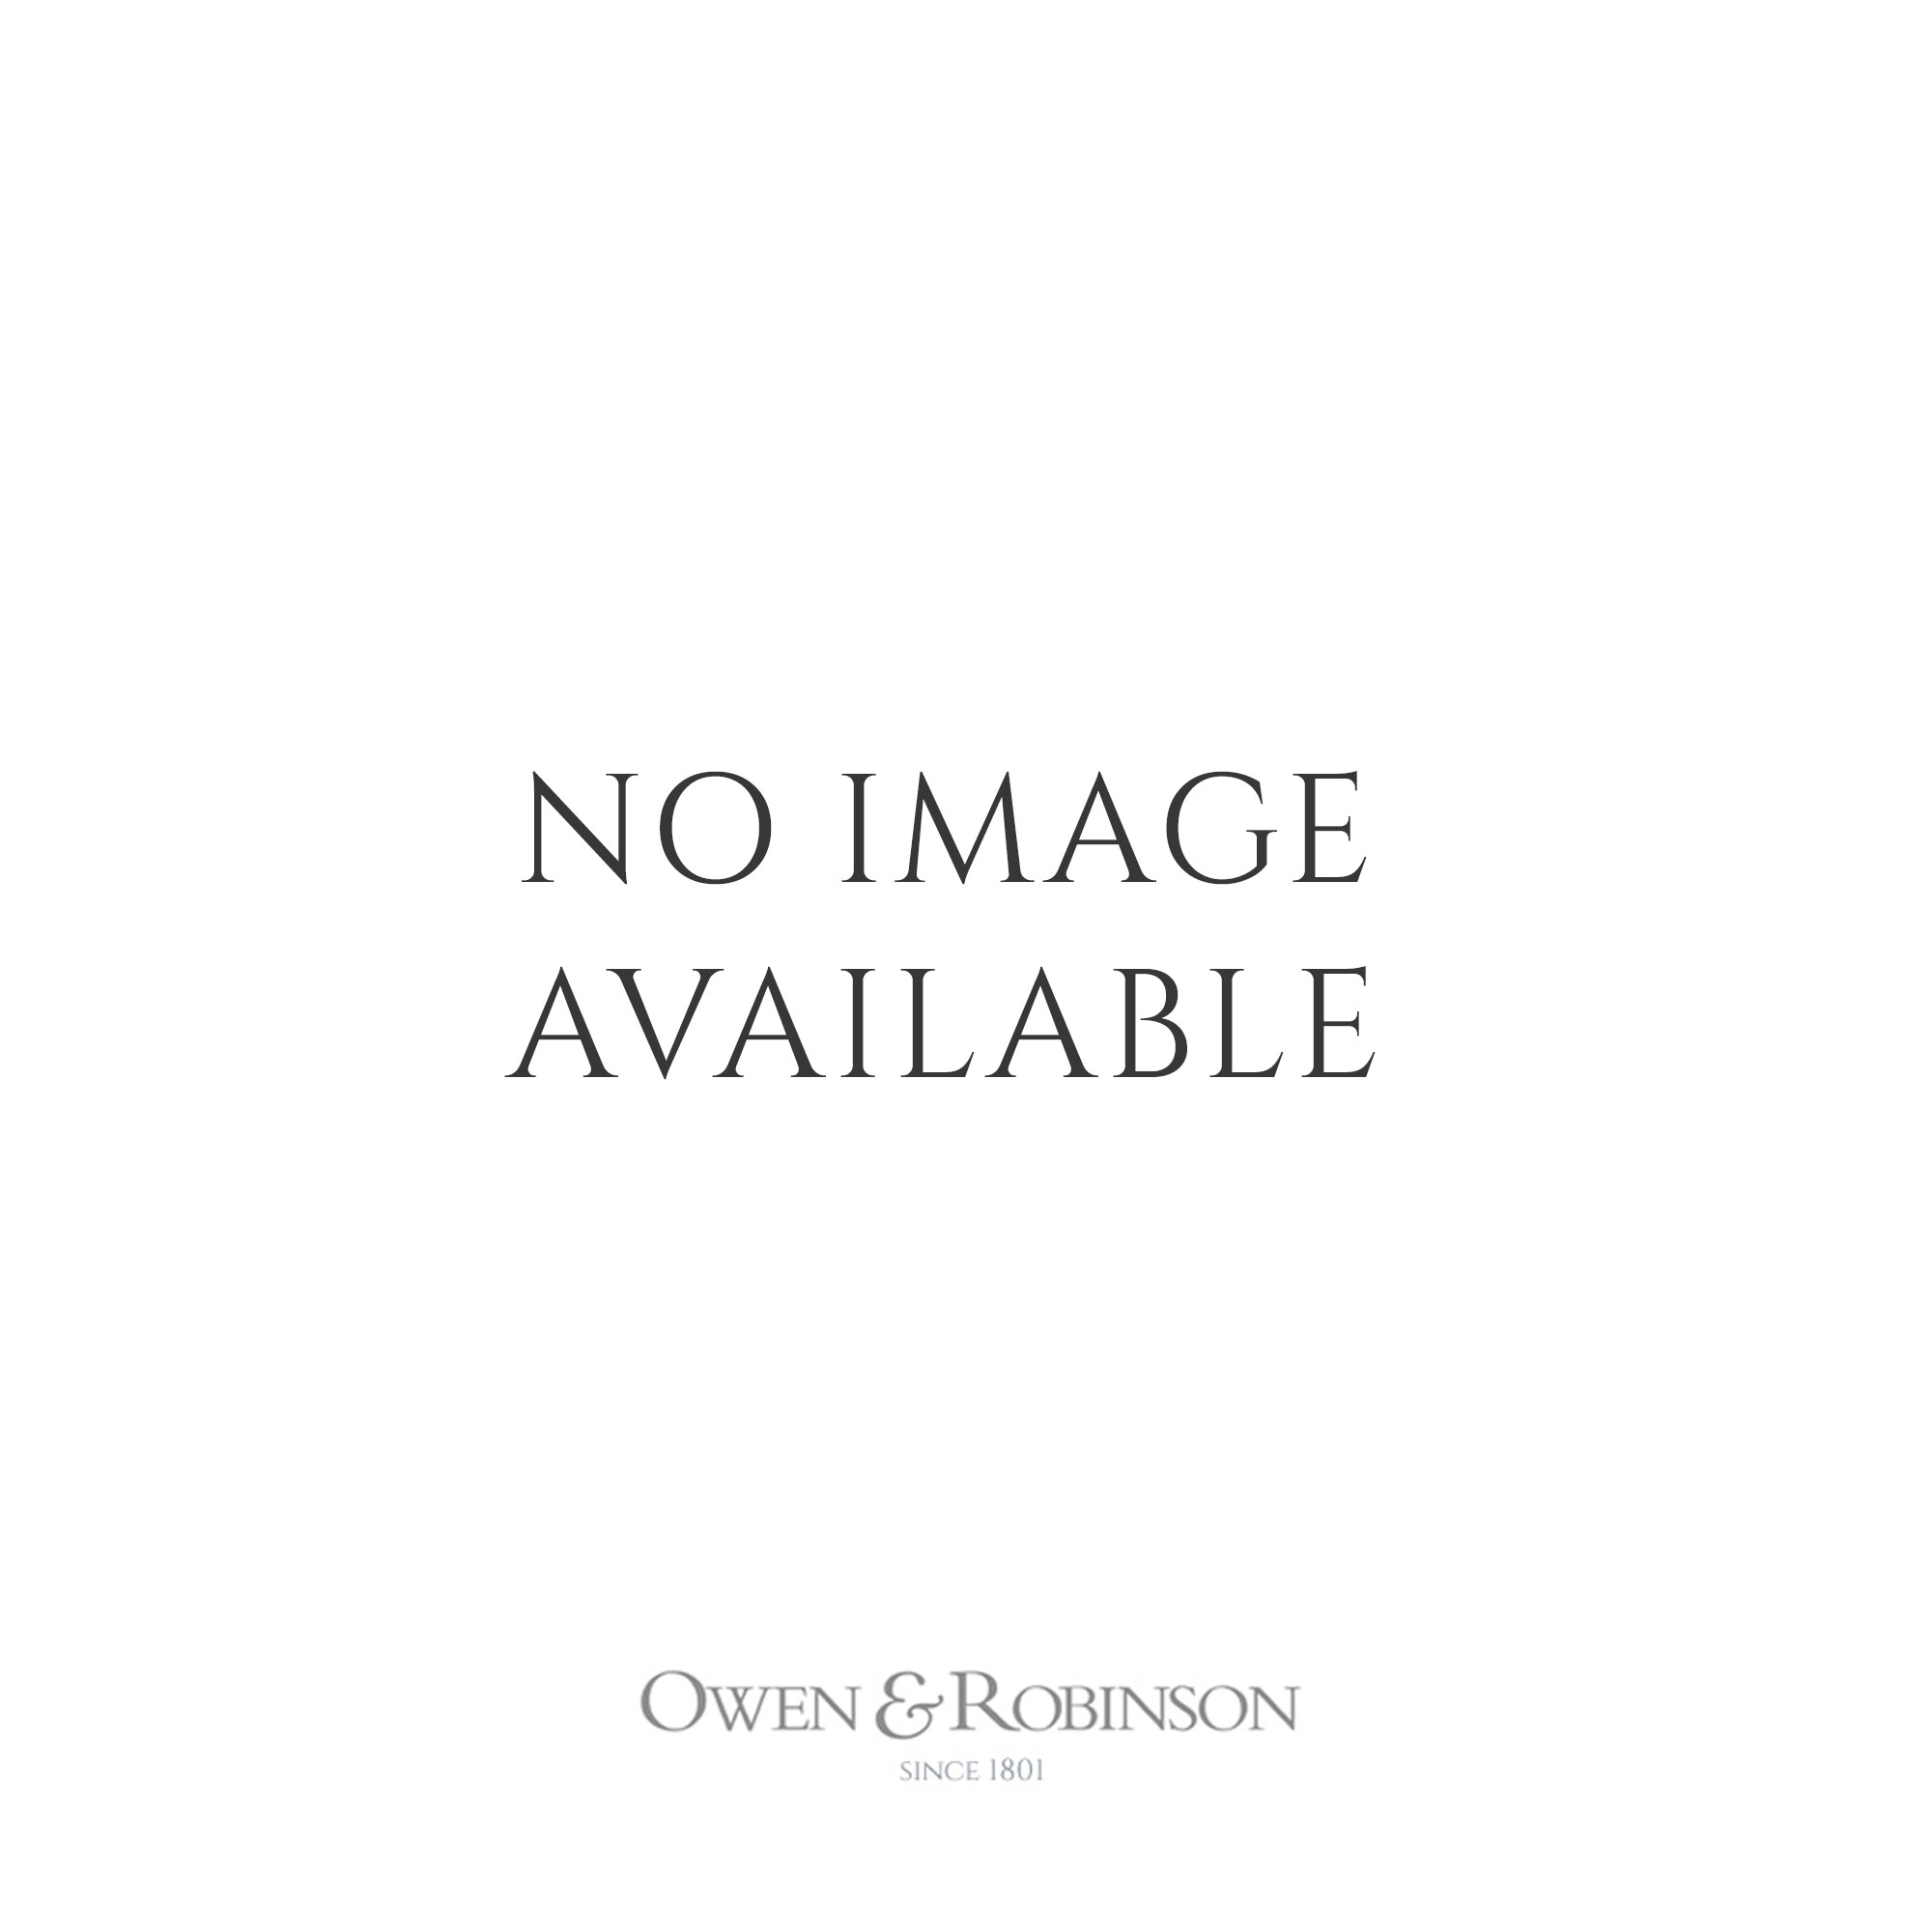 Audemars piguet royal oak offshore 44mm titanium watch at o r leeds for Royal oak offshore ceramic